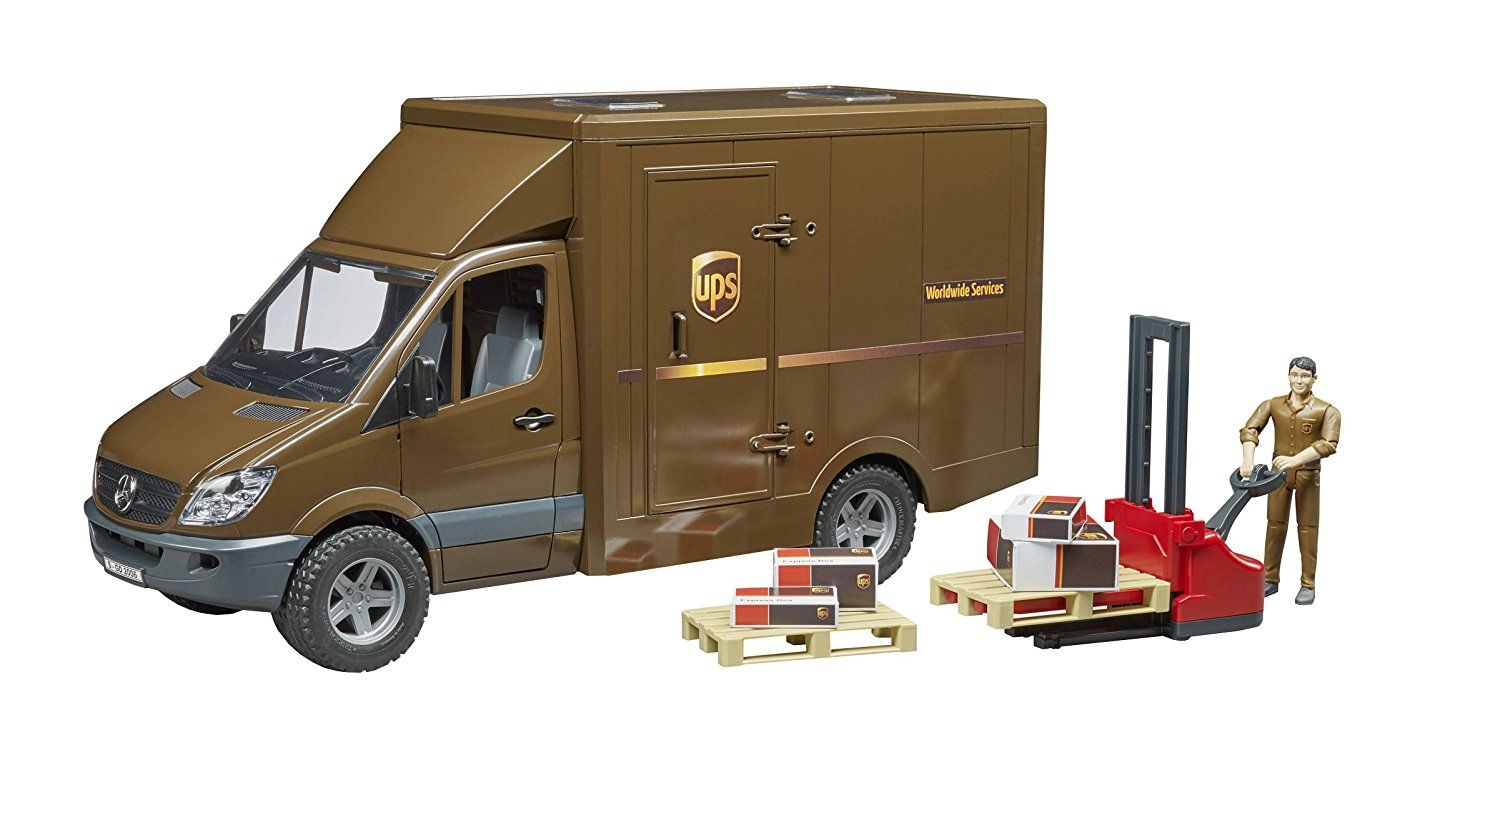 UPS Sprinter with Driver Vehicle Toy by Bruder Trucks (02538) by Bruder Trucks